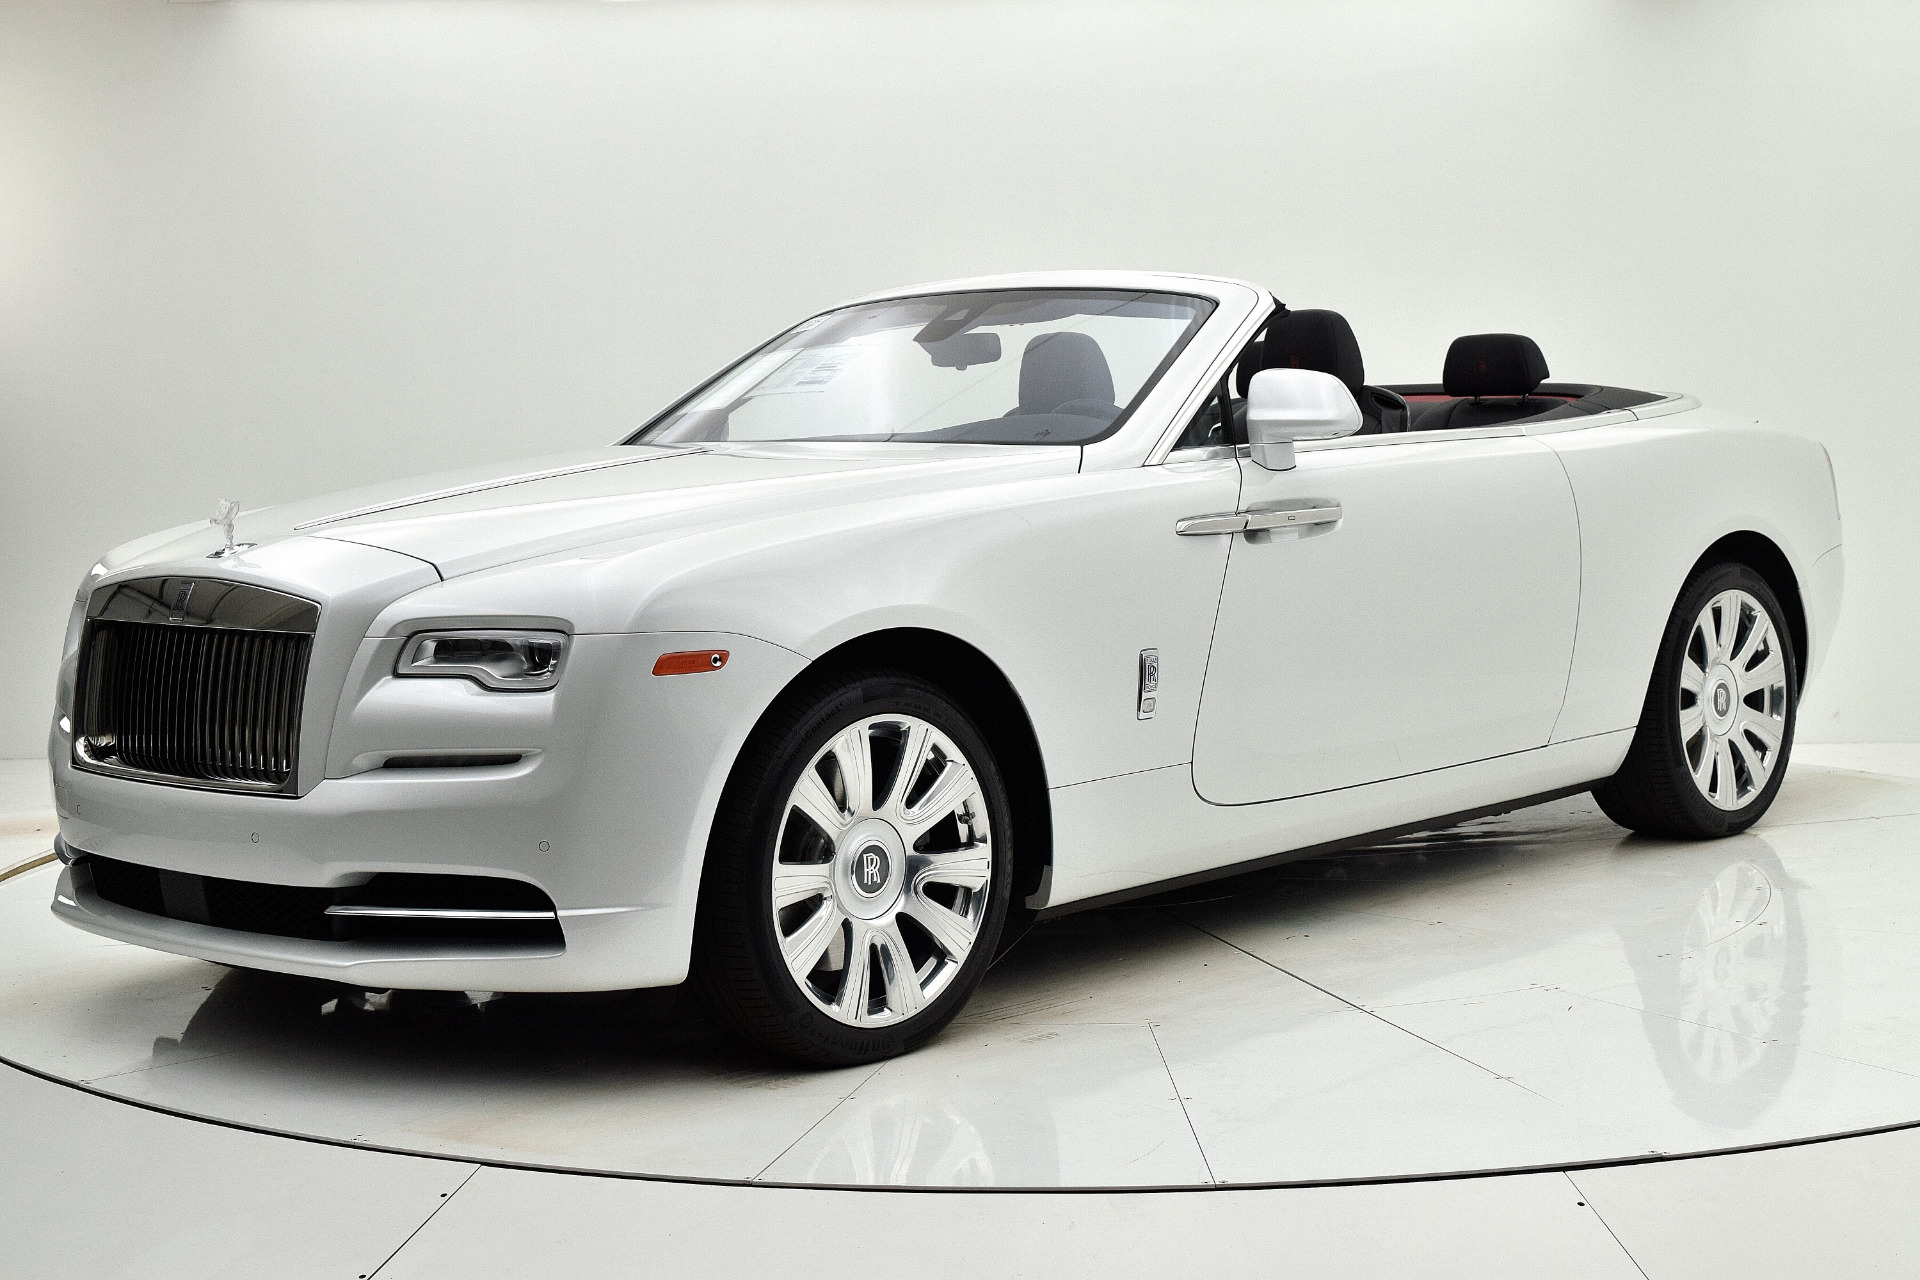 Used 2016 Rolls-Royce Dawn for sale $245,880 at F.C. Kerbeck Aston Martin in Palmyra NJ 08065 2